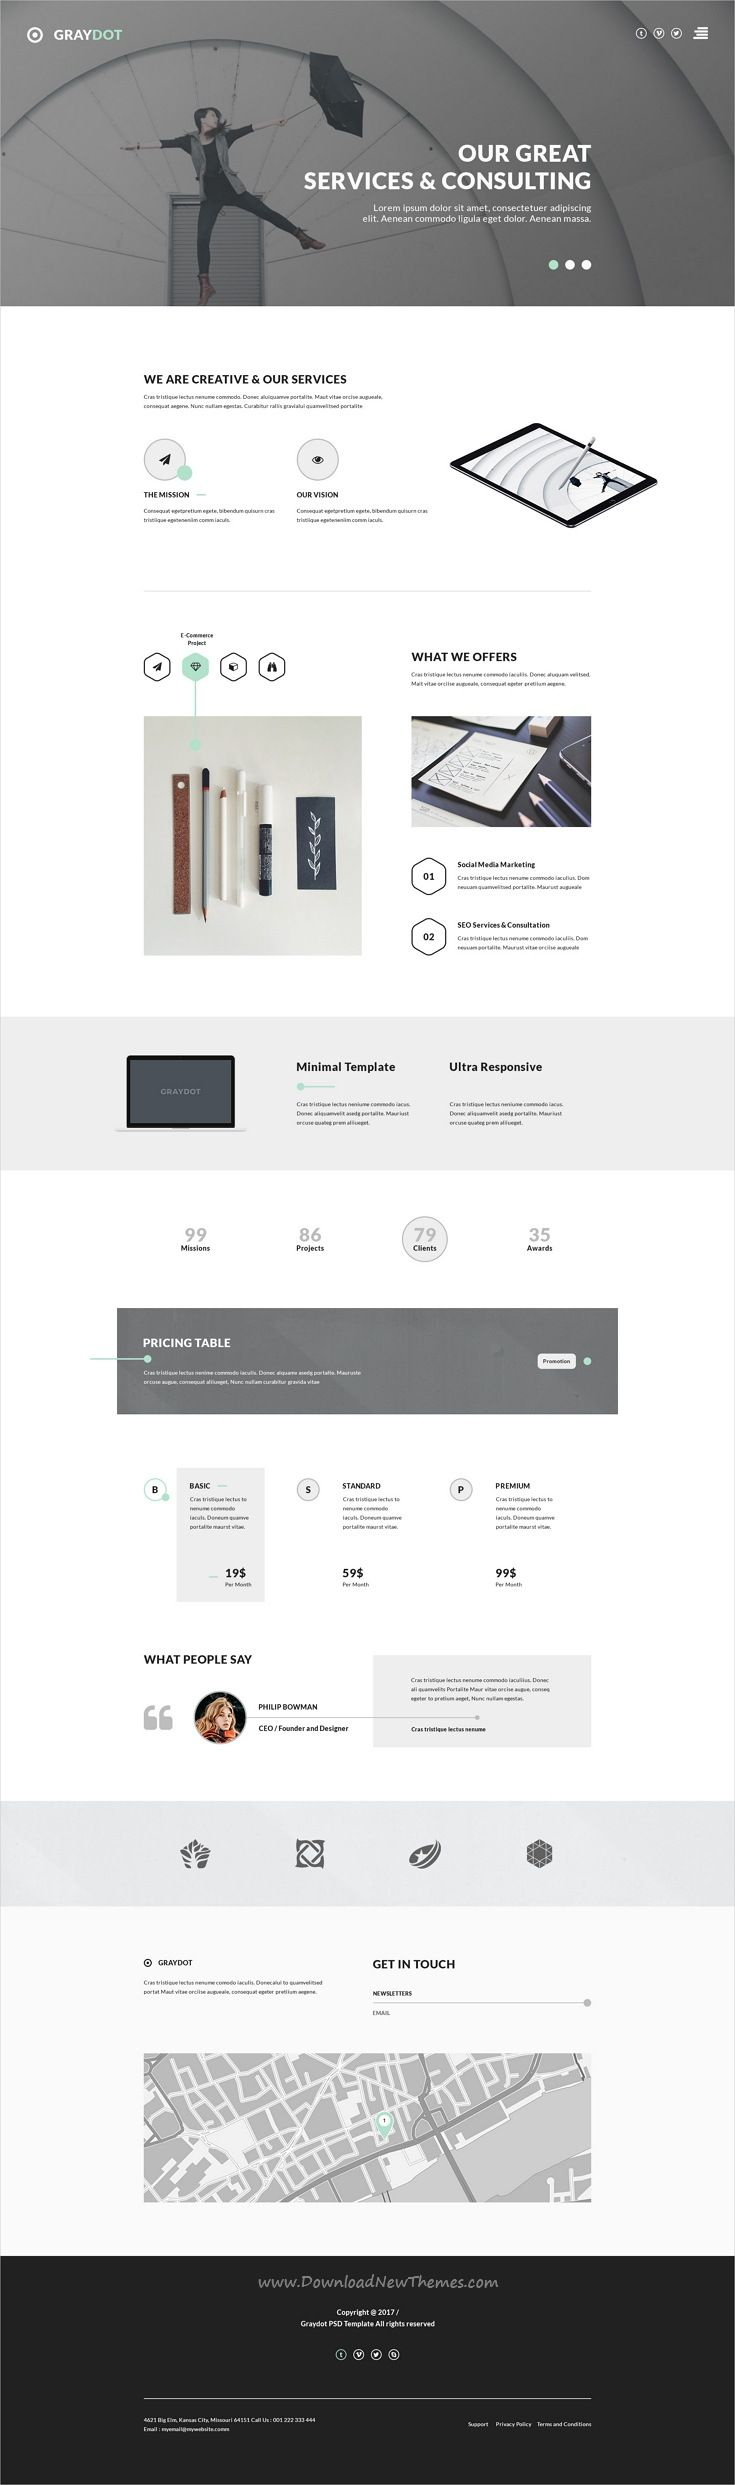 Graydot is clean and modern design PSD template for #consulting #services website with 9 layered PSD  pages download now..